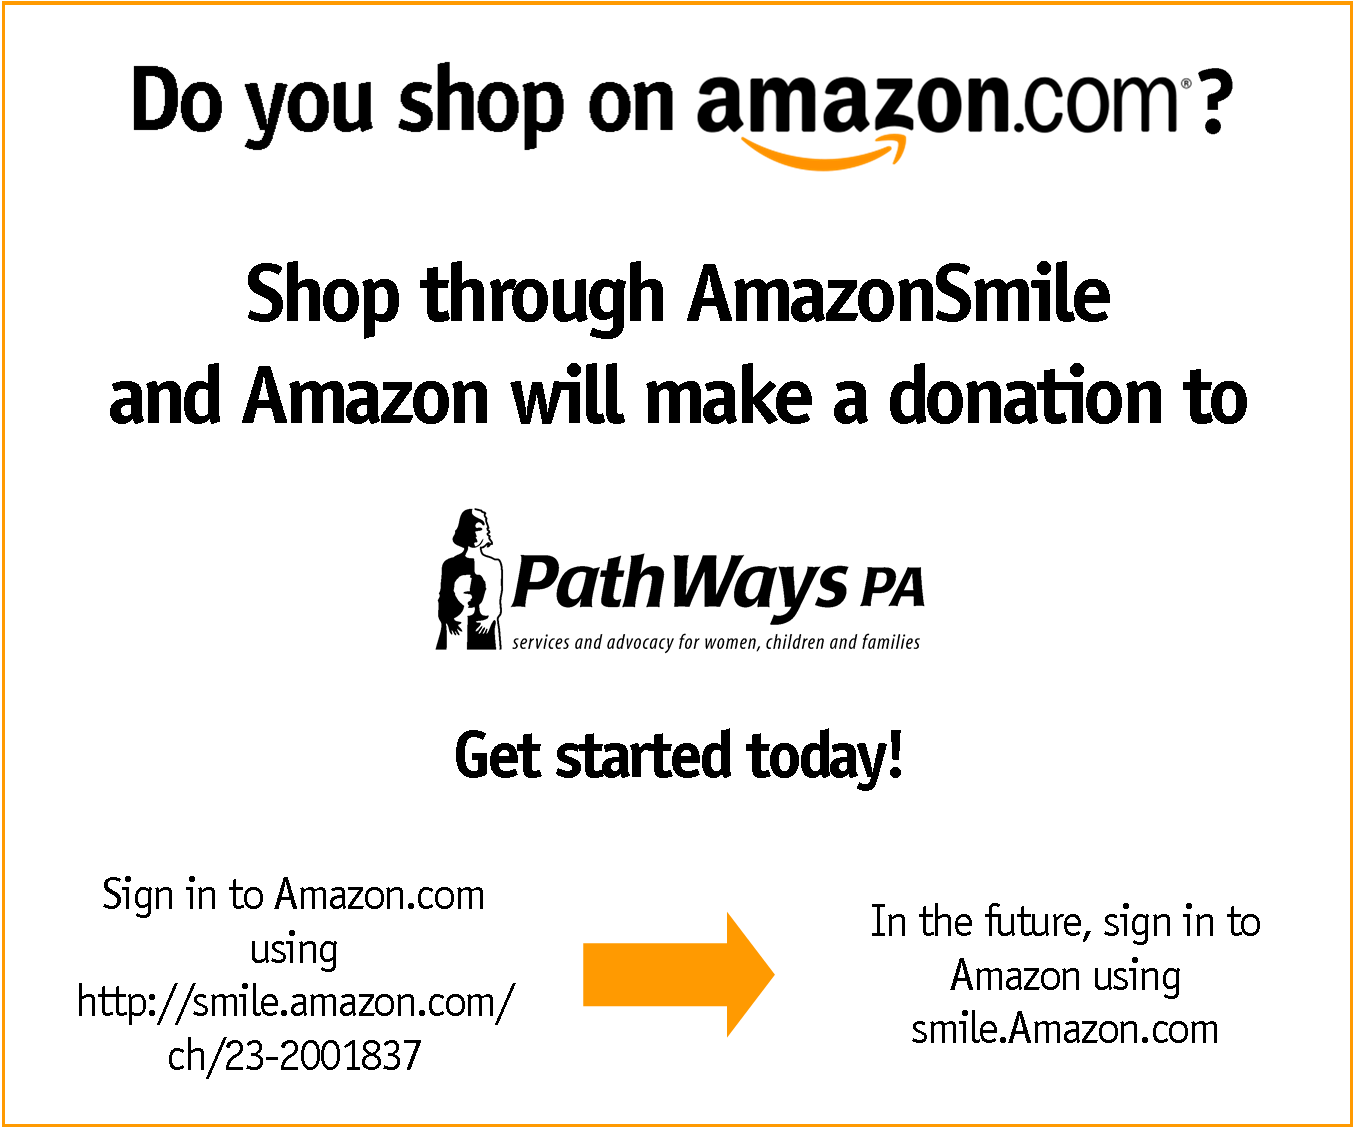 If You Shop On Amazon You Can Donate To Pathways Pa At The Same Time 5 Of Your Purchase Will Be Donated To Pathways Amazon Amazon Shopping Make A Donation